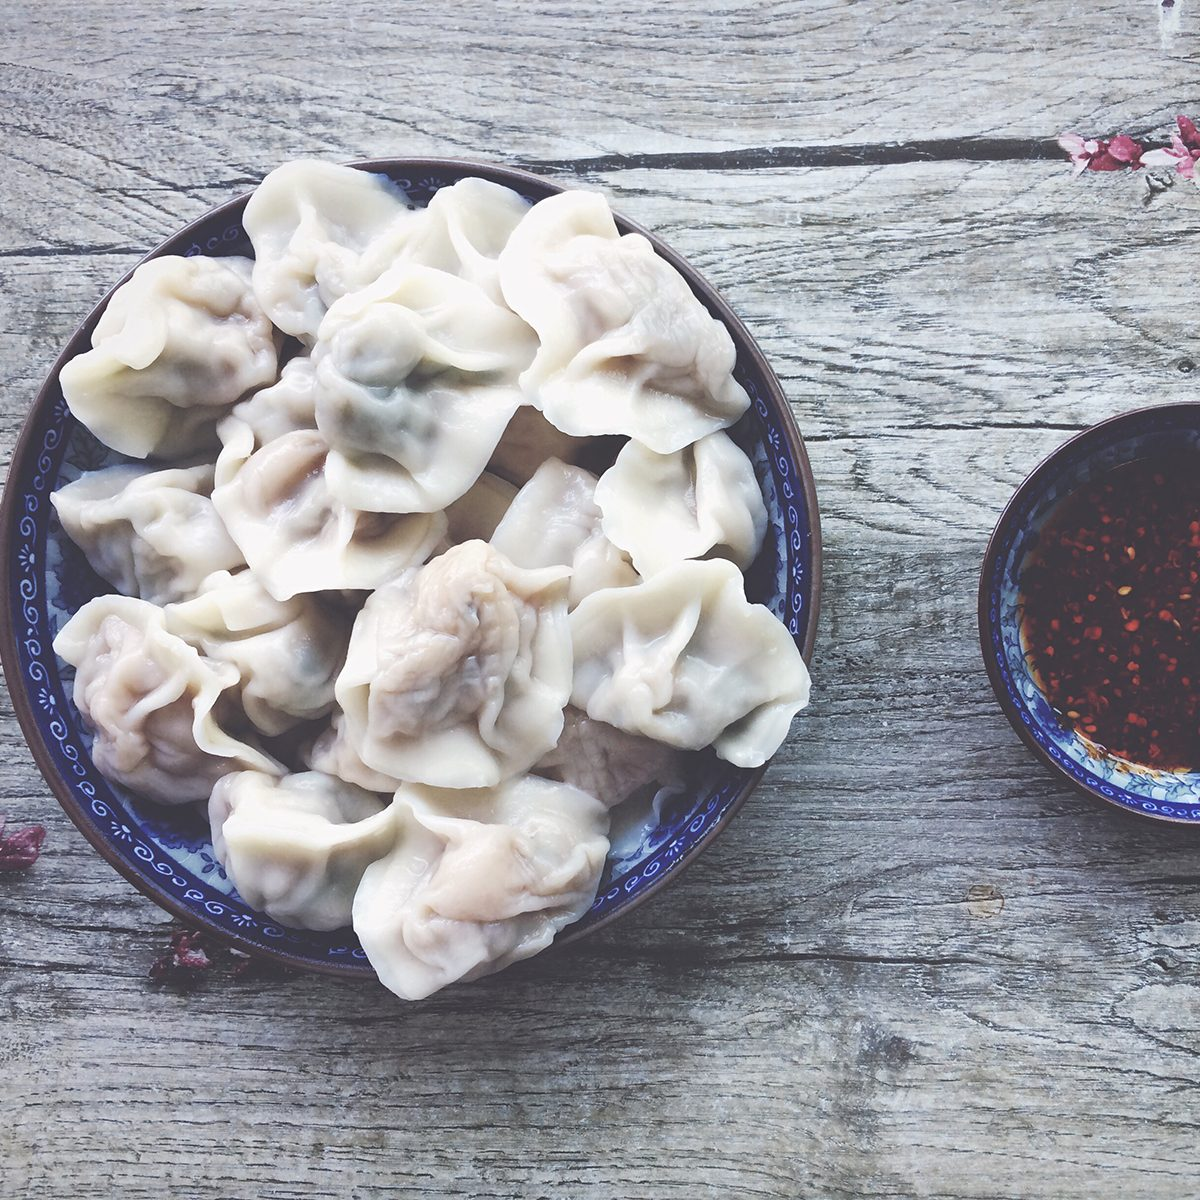 indian main dishes Dumpling And Chili Oil Served In Bowls On Wooden Table